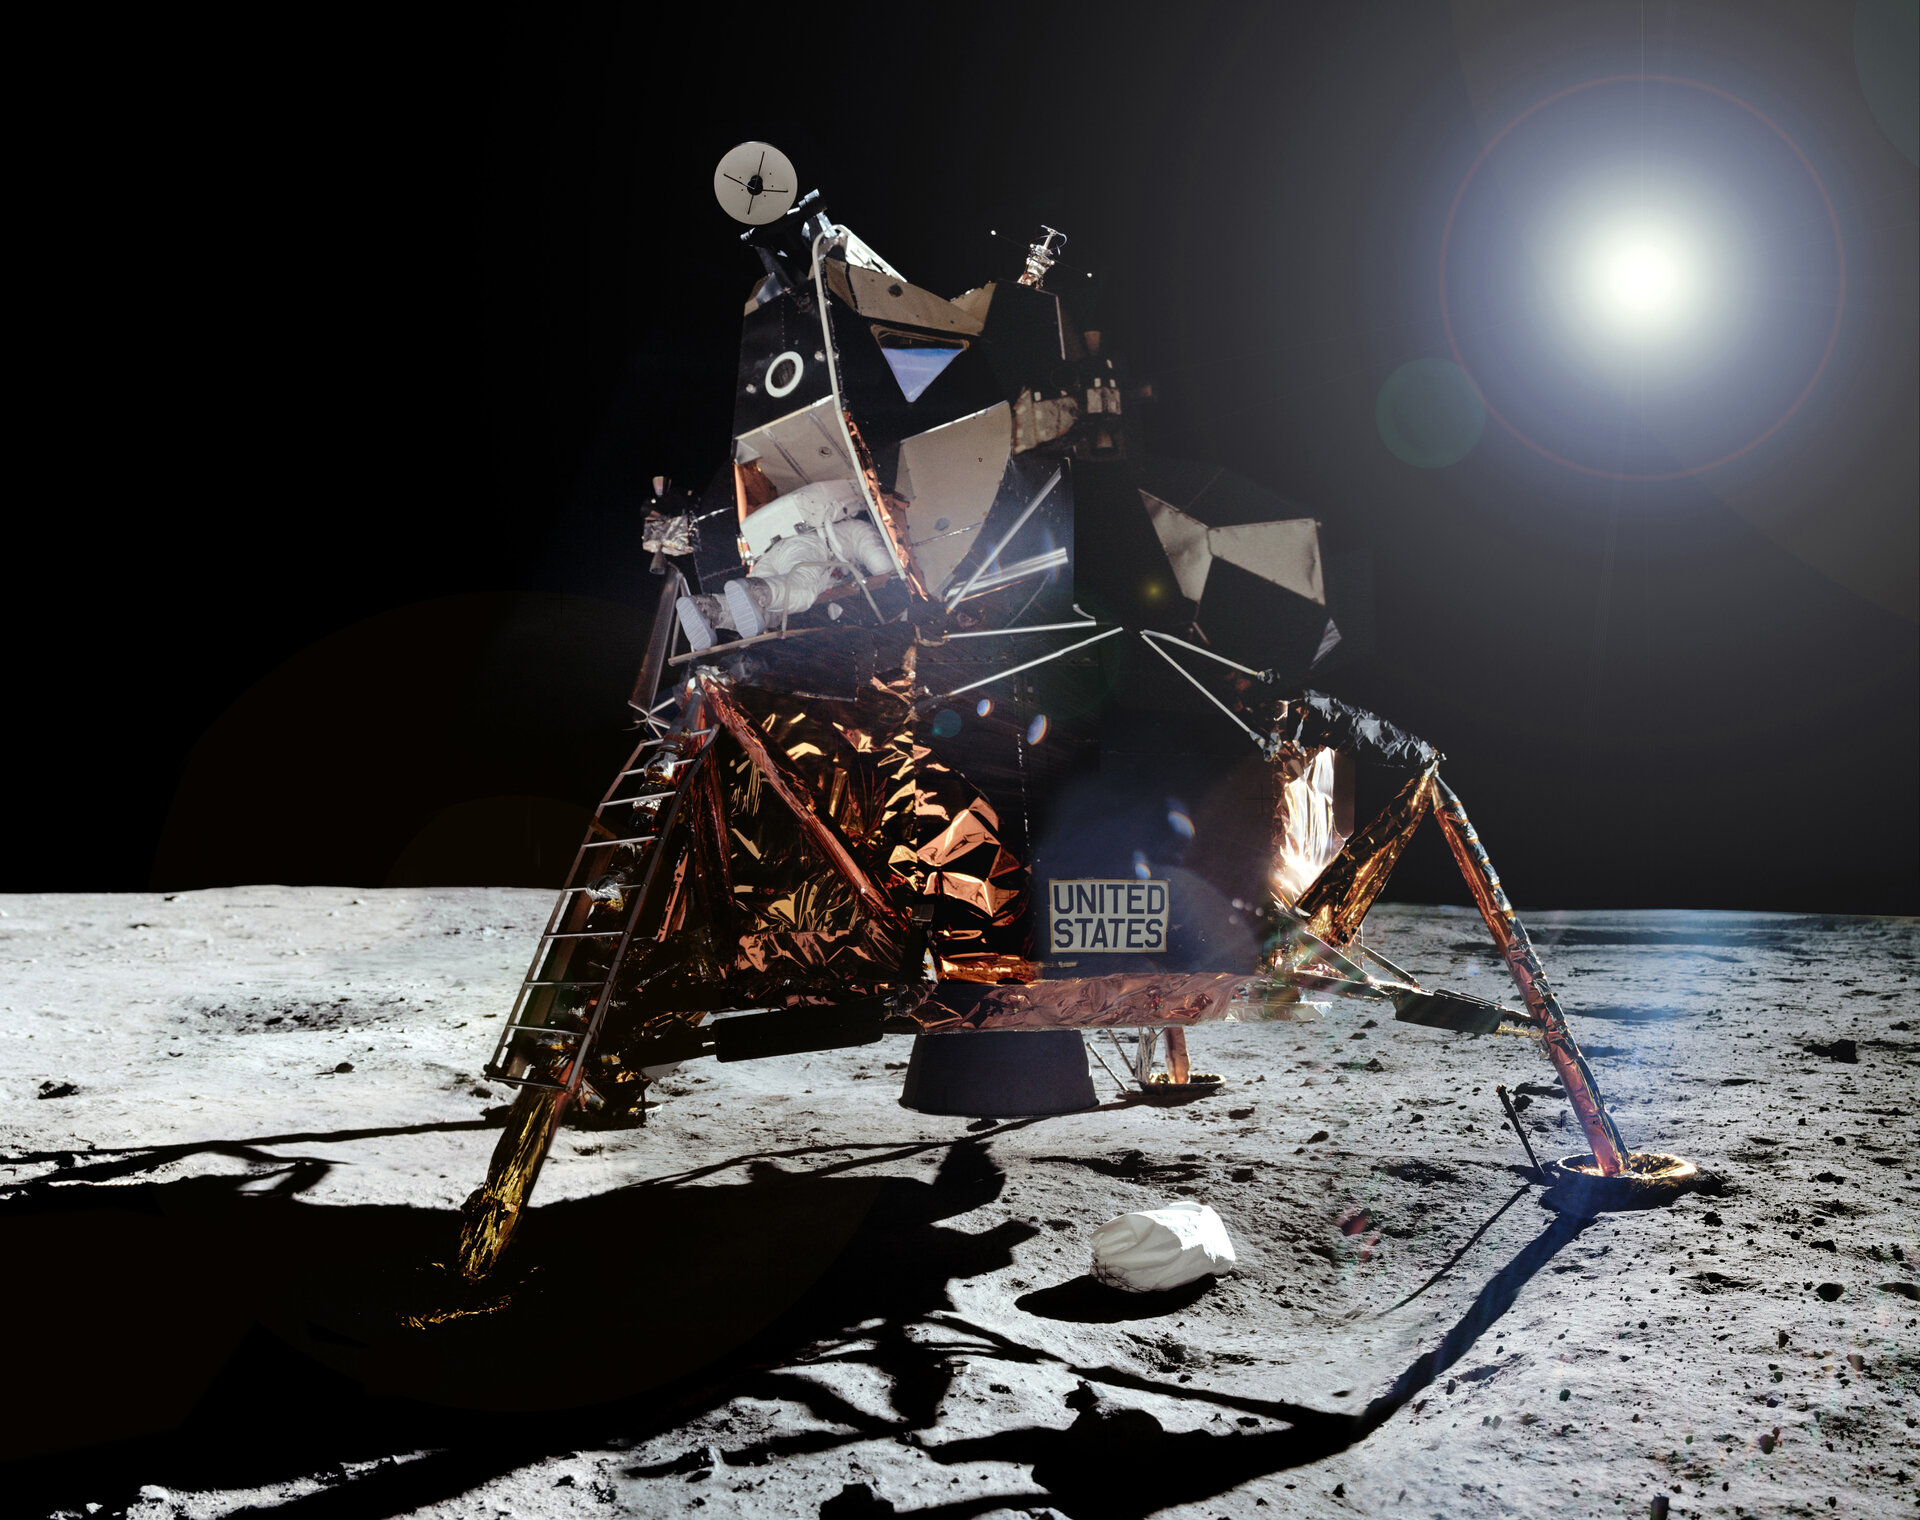 Aldrin leaves Apollo 11 LM 'Eagle'